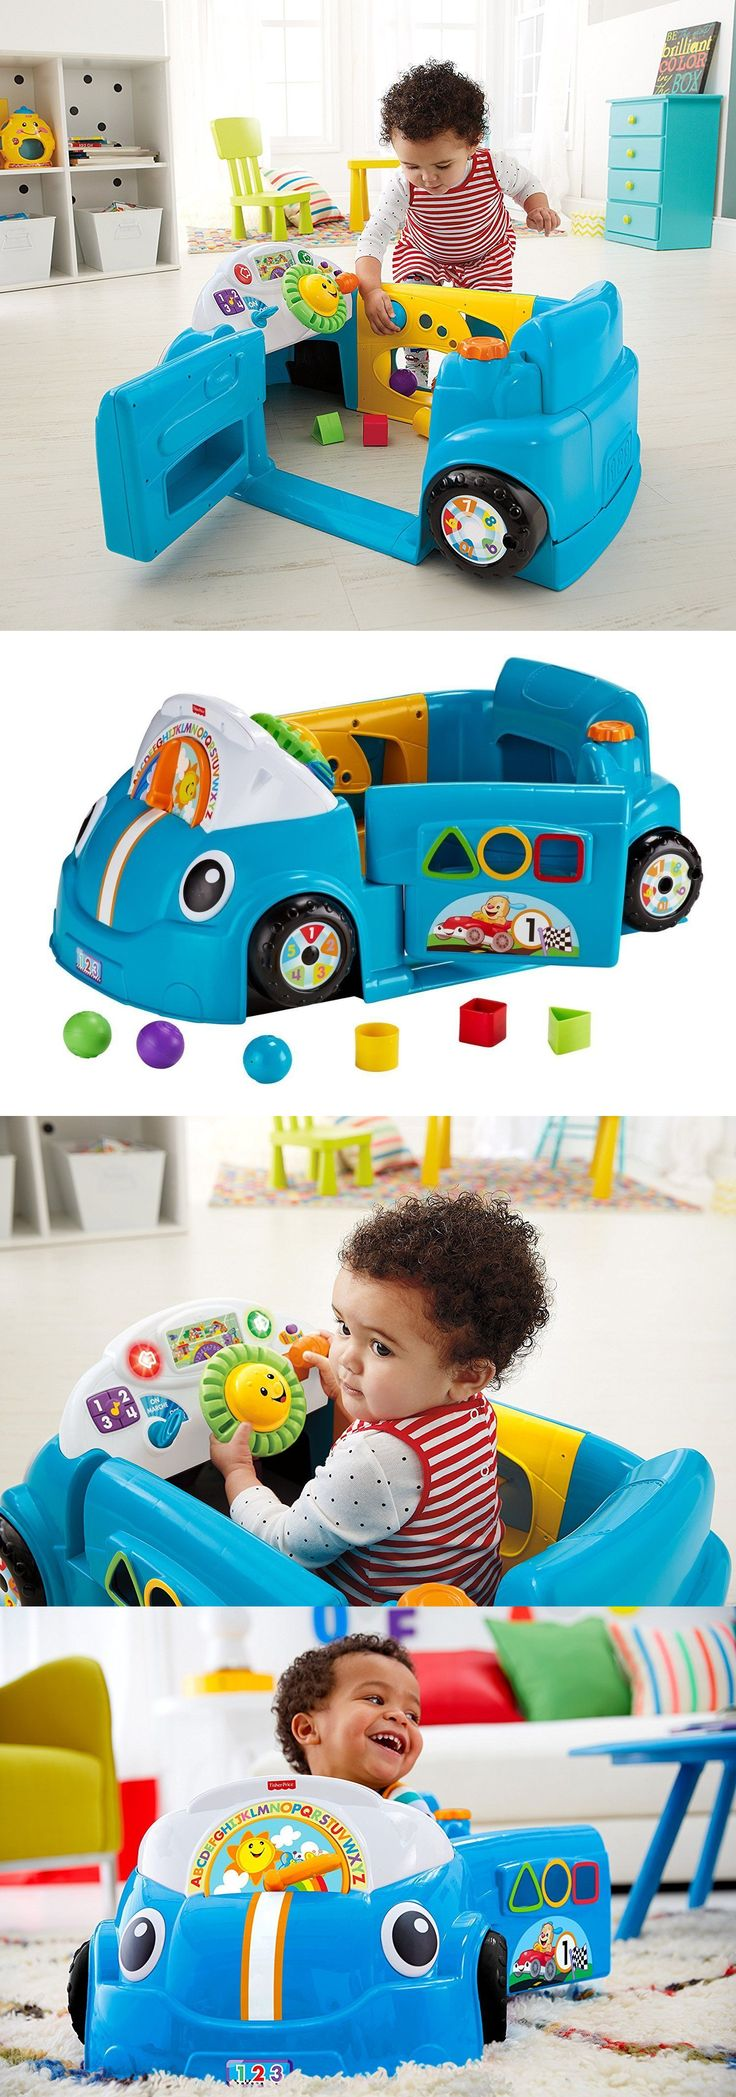 Baby: Educational Toys For 1 Year Old And Up Top Toddler Toys Car Boys Girls Learning BUY IT NOW ONLY: $79.99